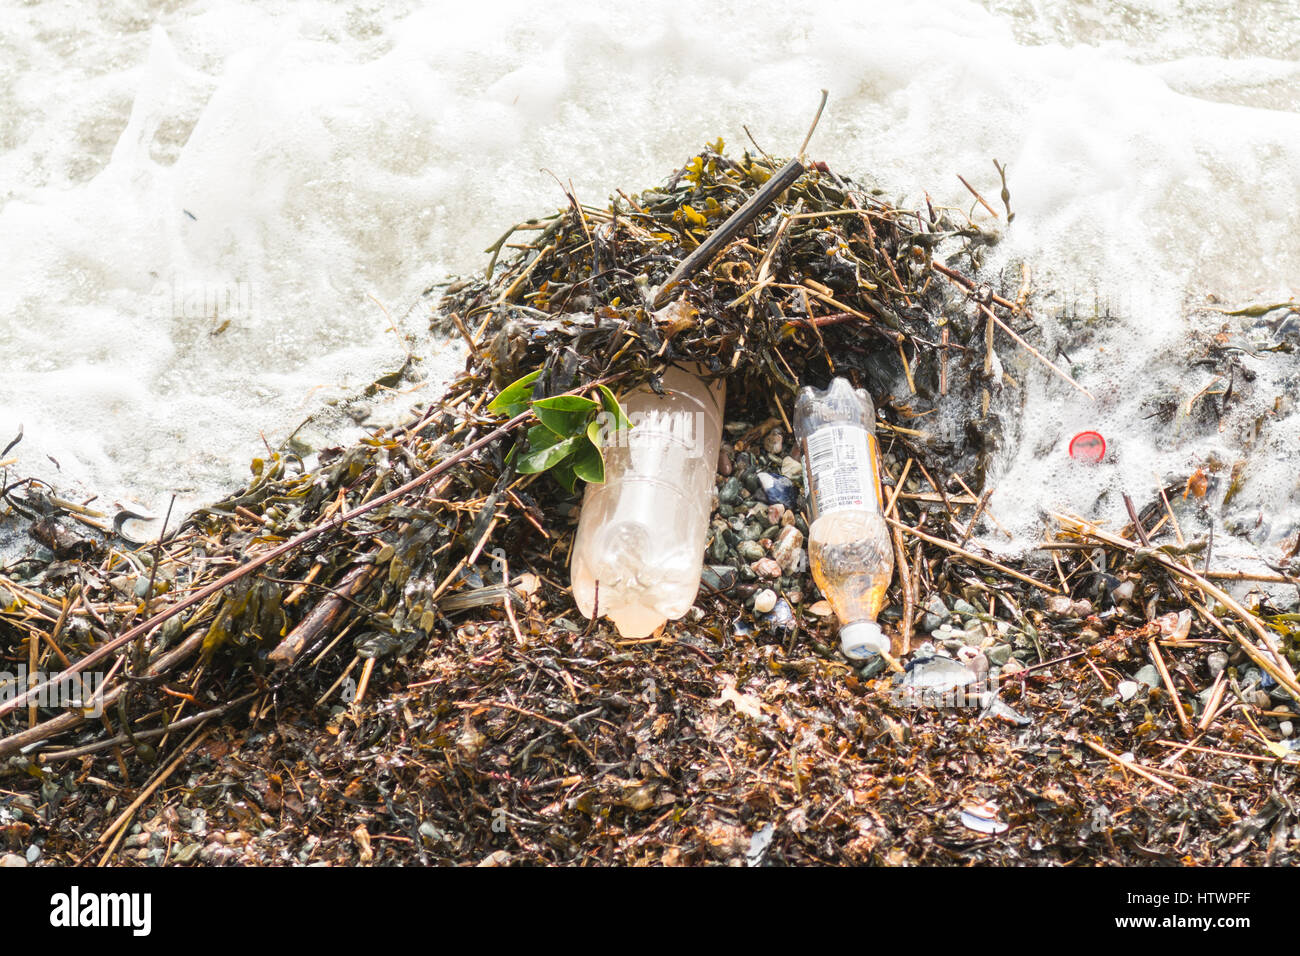 plastic bottles of irn bru washed up on beach in the Clyde Estuary - Stock Image